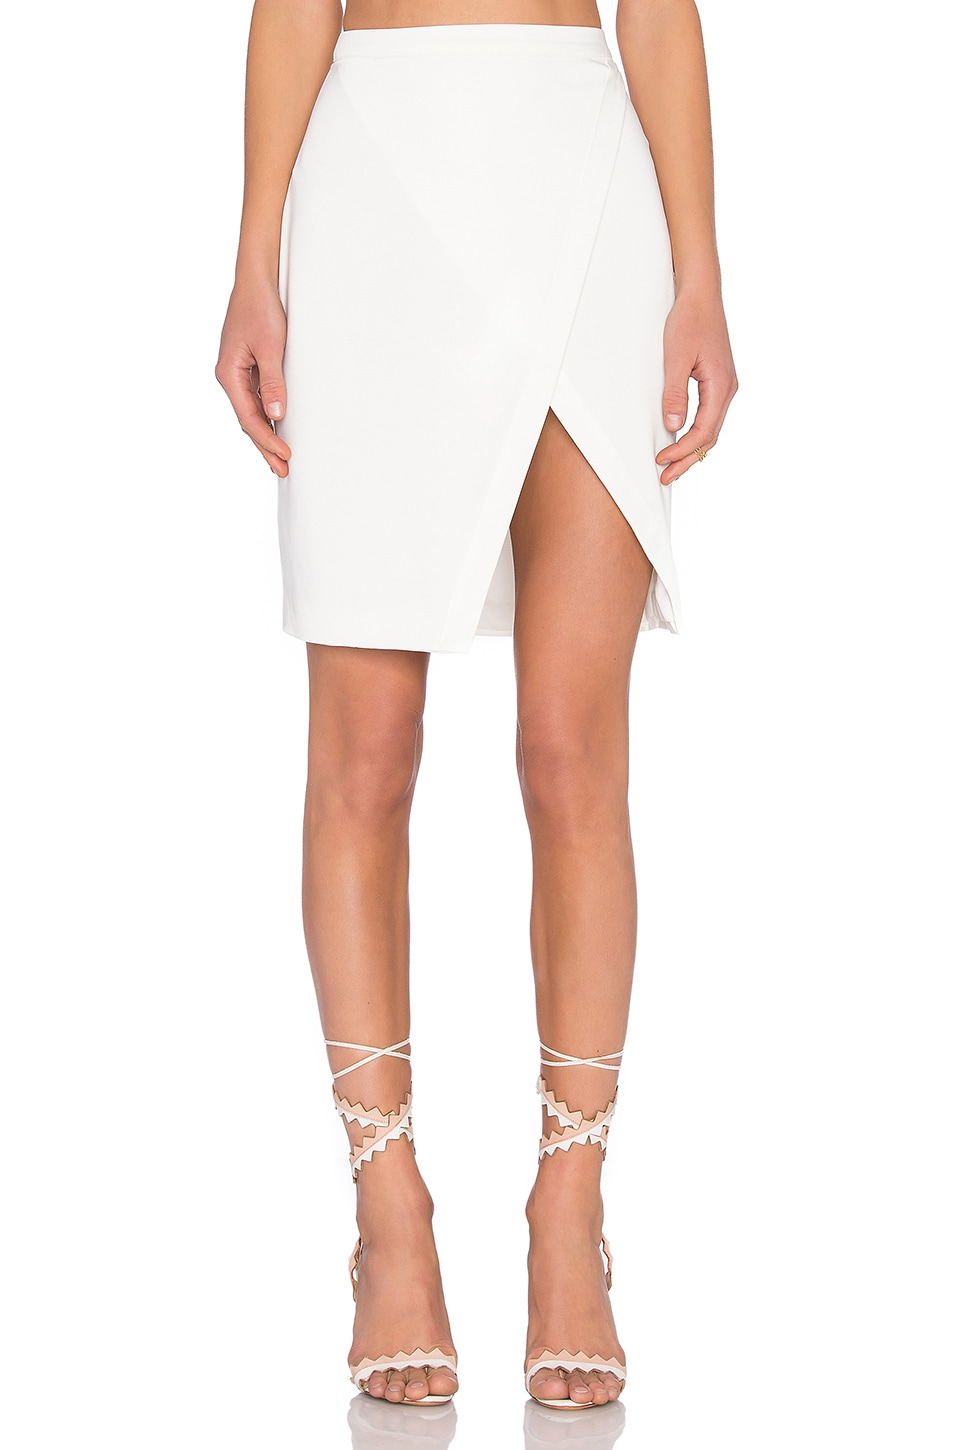 Lovers + Friends x REVOLVE Hoodwinked Skirt in Ivory